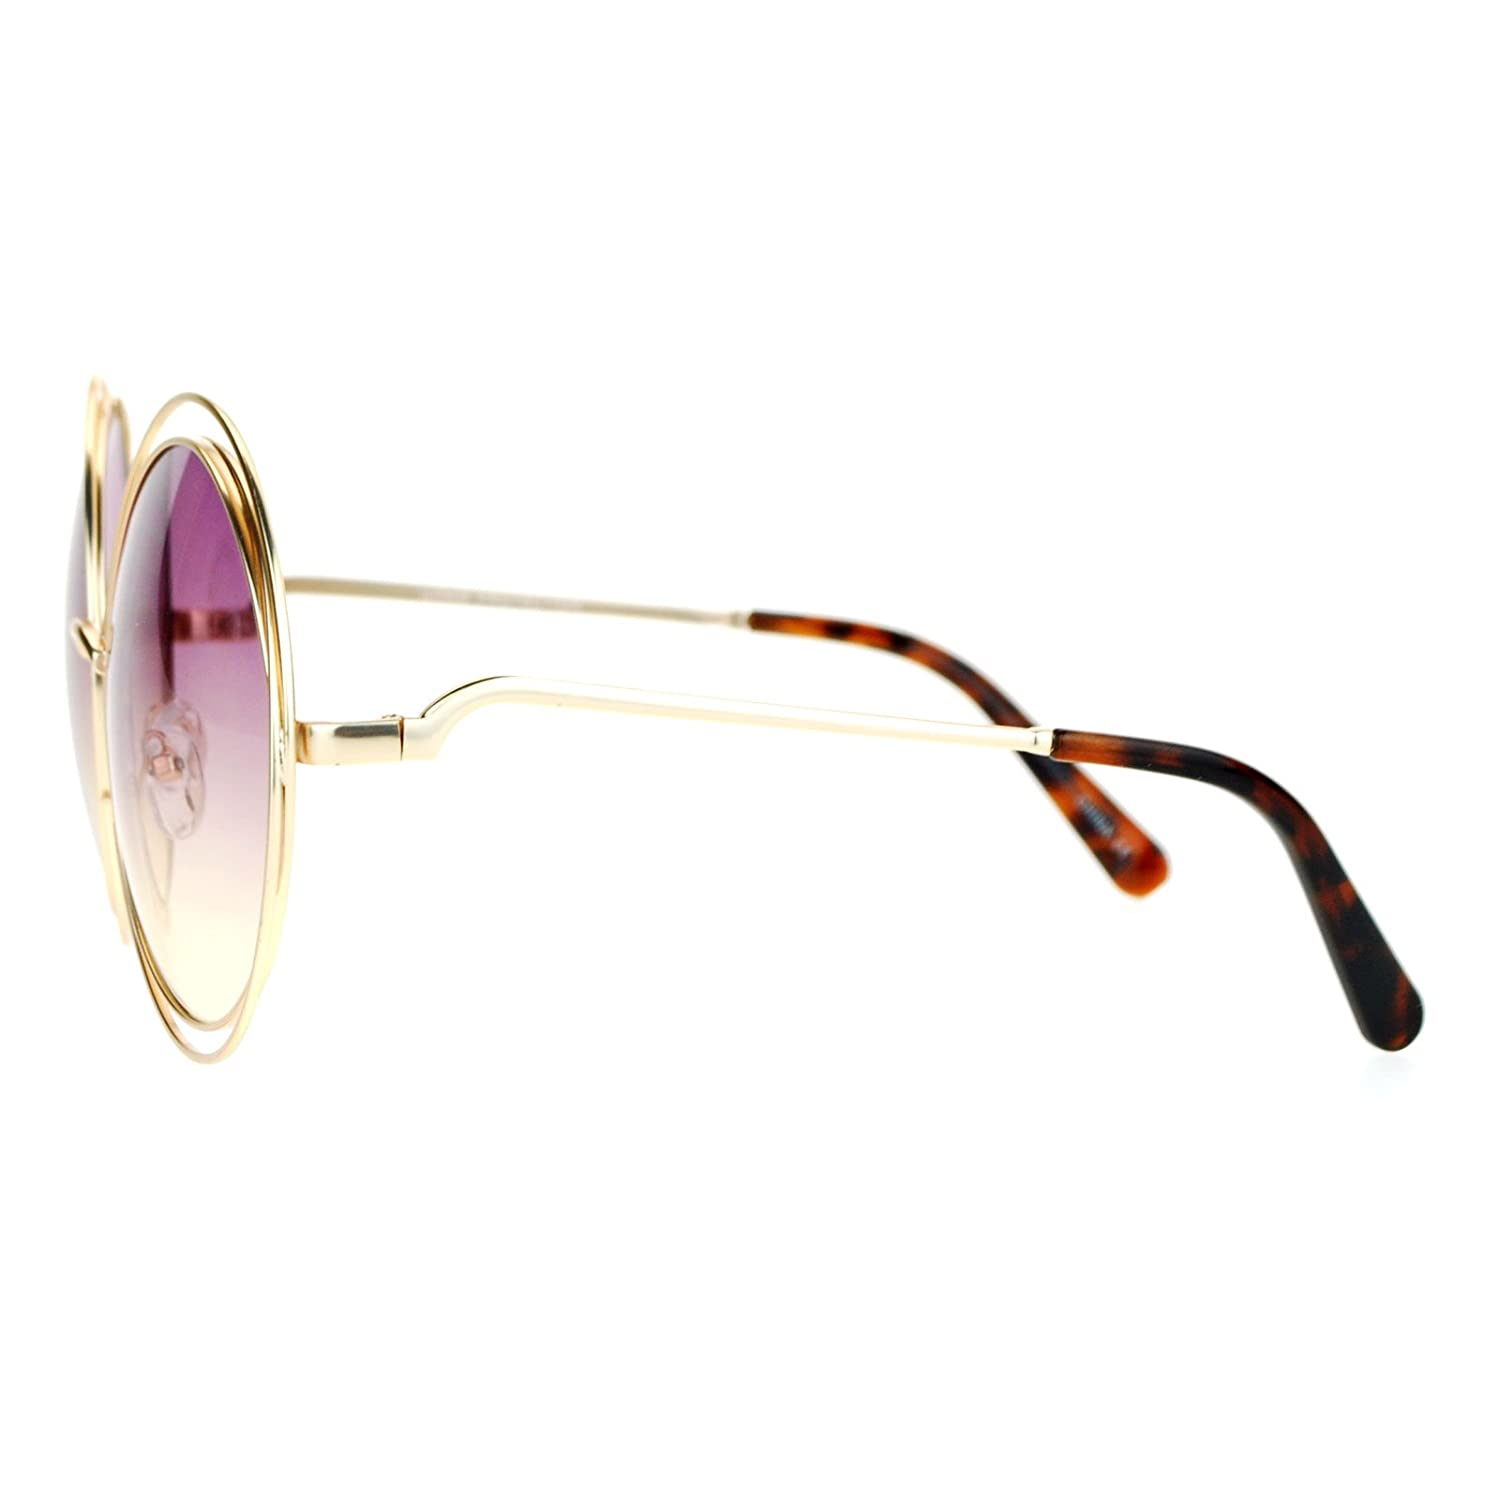 82f6adf793 Amazon.com  SA106 Oceanic Color Lens Large Round Circle Double Wire Rim  Sunglasses Blue Pink  Clothing